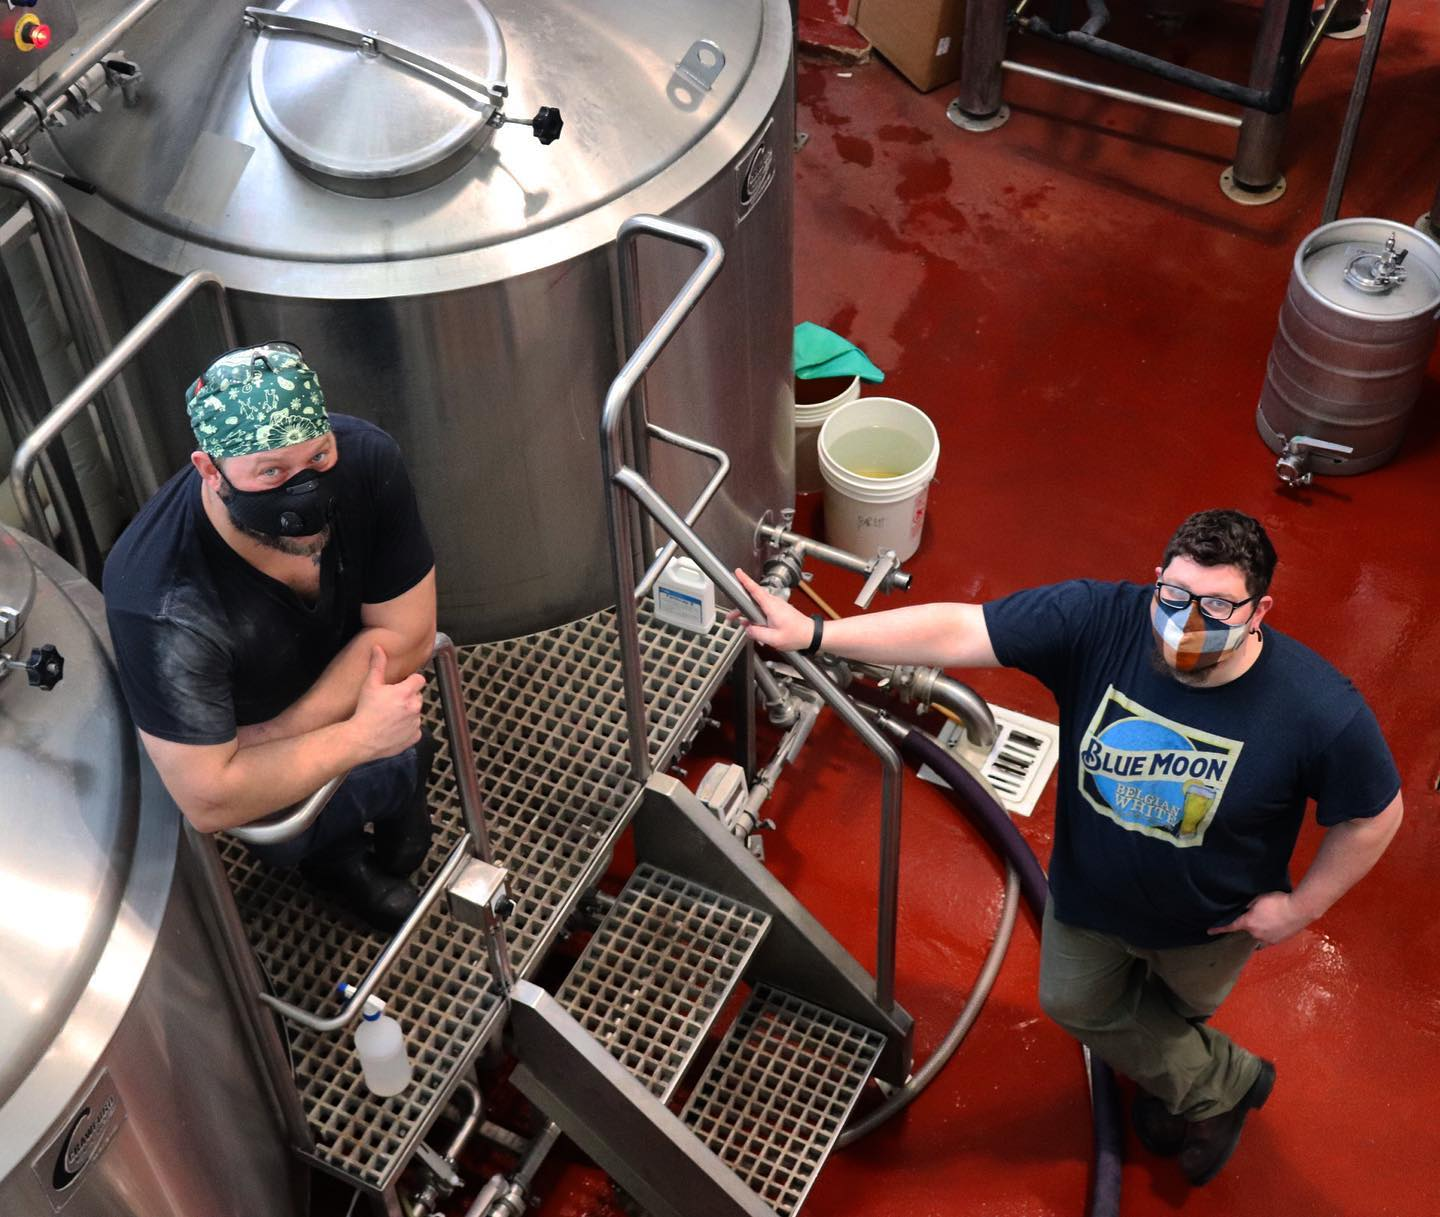 Two Brewers standing near brewing vessels at Pollyanna Brewing Company